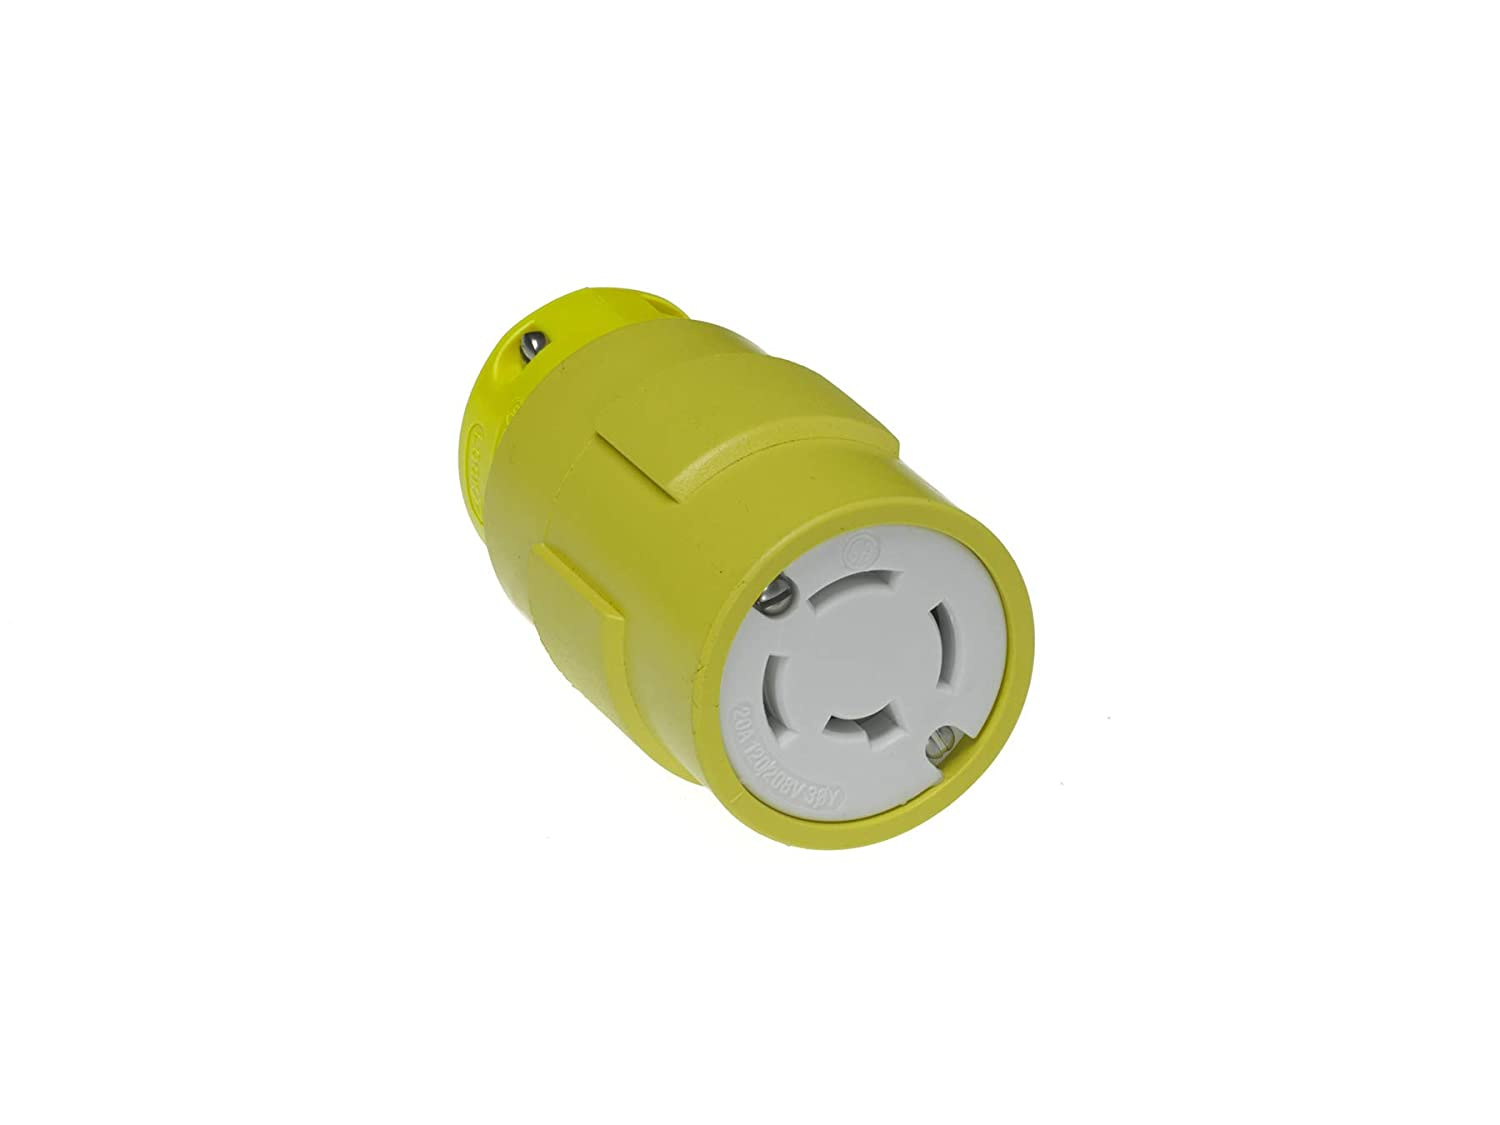 3 Wires Rubber 3 Poles Yellow 20A Current Grounding Tab Woodhead 2708G Super-Safeway Connector Industrial Duty 125//250V Voltage Locking Blade